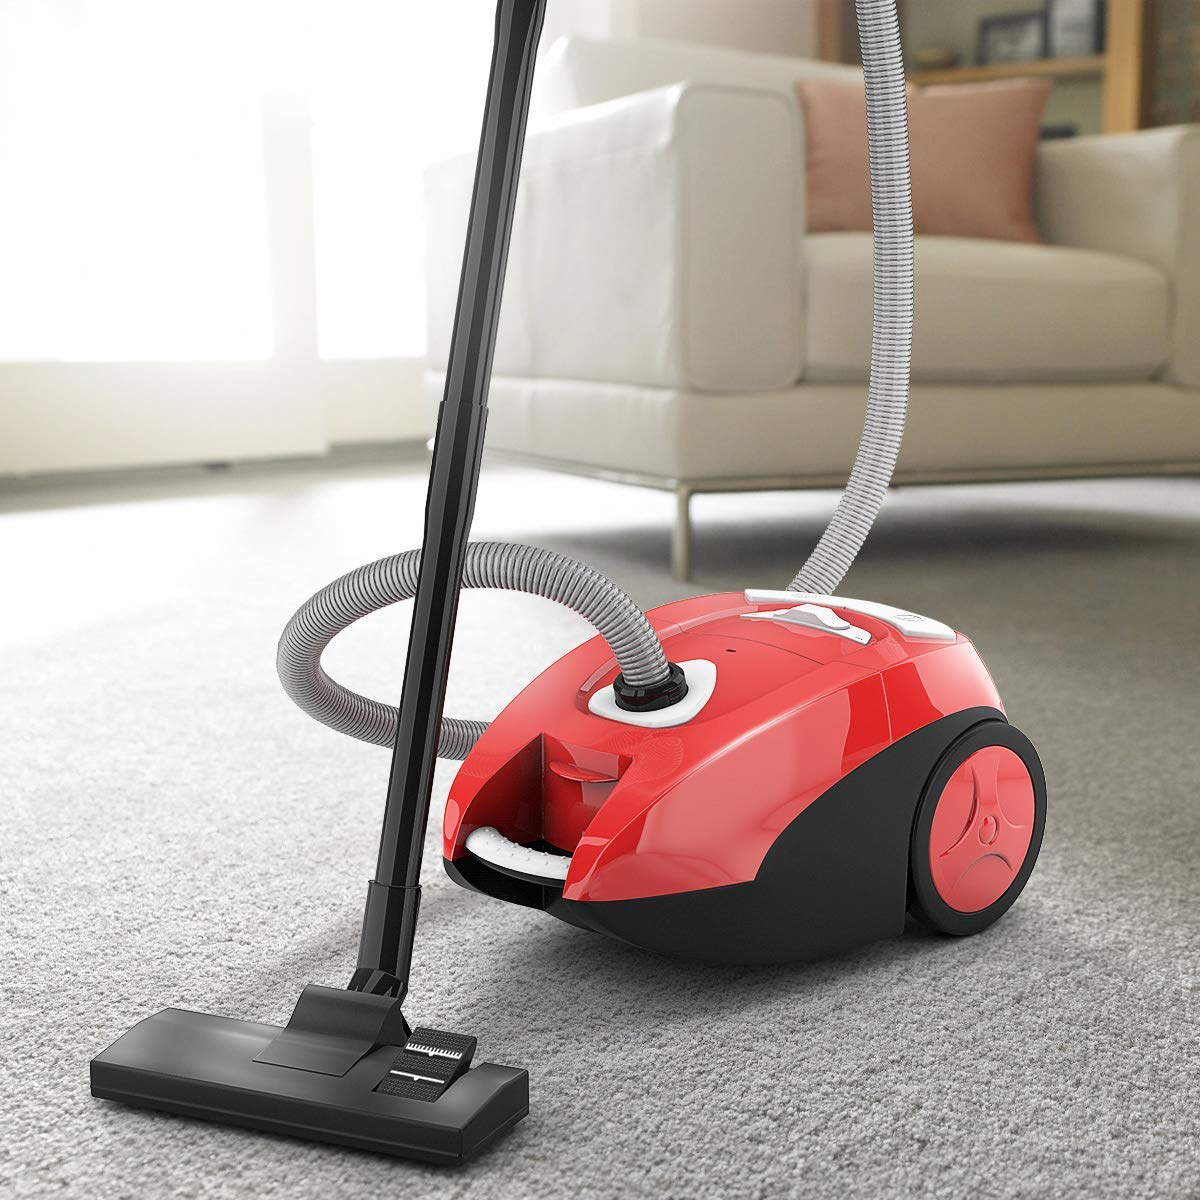 COSTWAY Bagless Canister Vacuum Rewind Corded Carpet Hard Floor Cyclonic Adjustable Vacuum Cleaner with Washable Filter (15'' X 11'' X 8'')